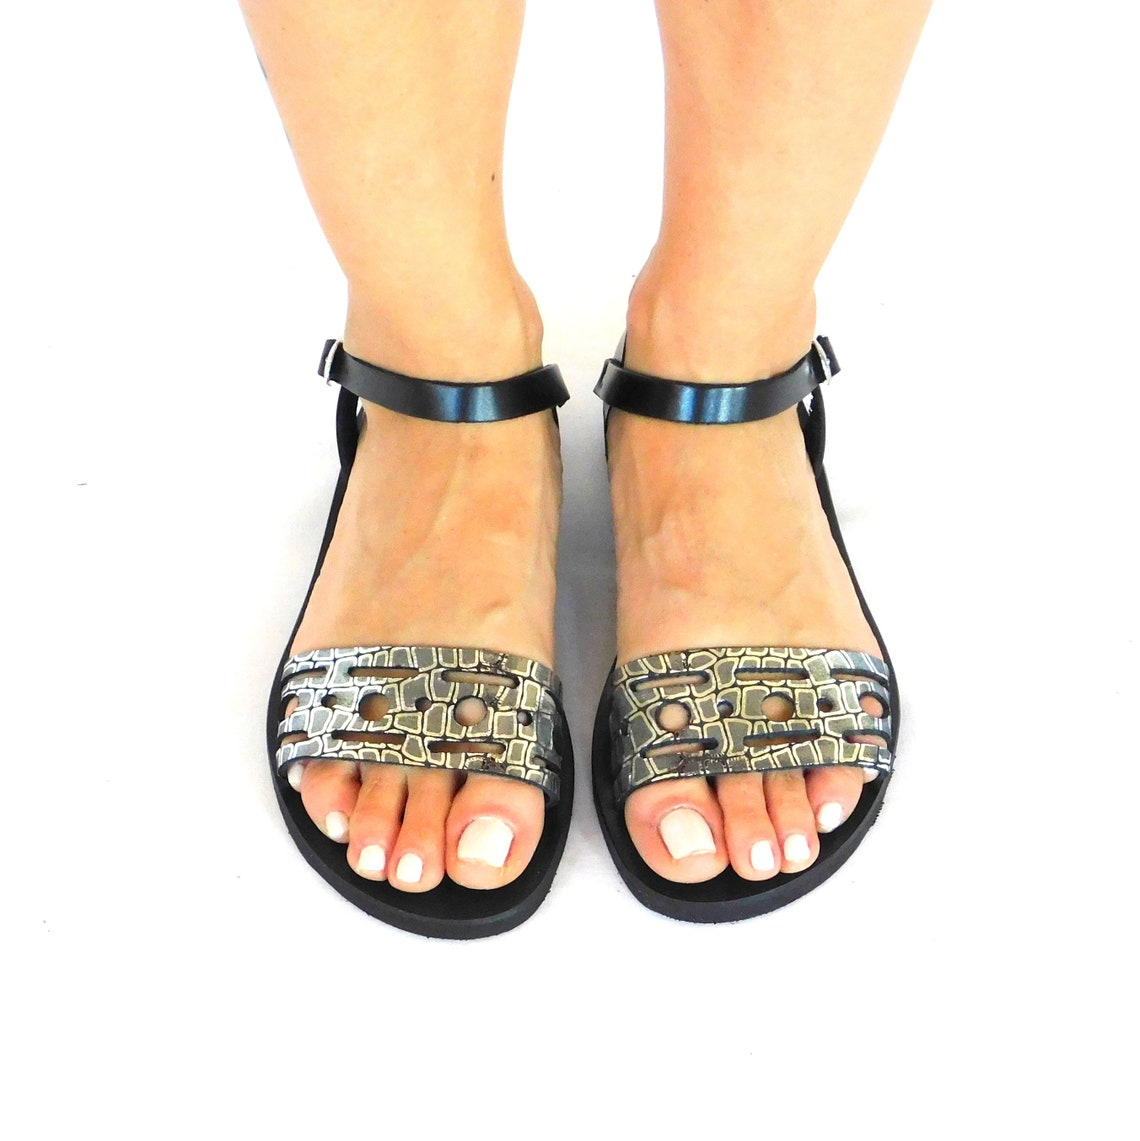 Strappy sandals, leather sandals, ankle strap sandals, metallic leather sandals, summer flat shoes, women sandals, handmade sandals